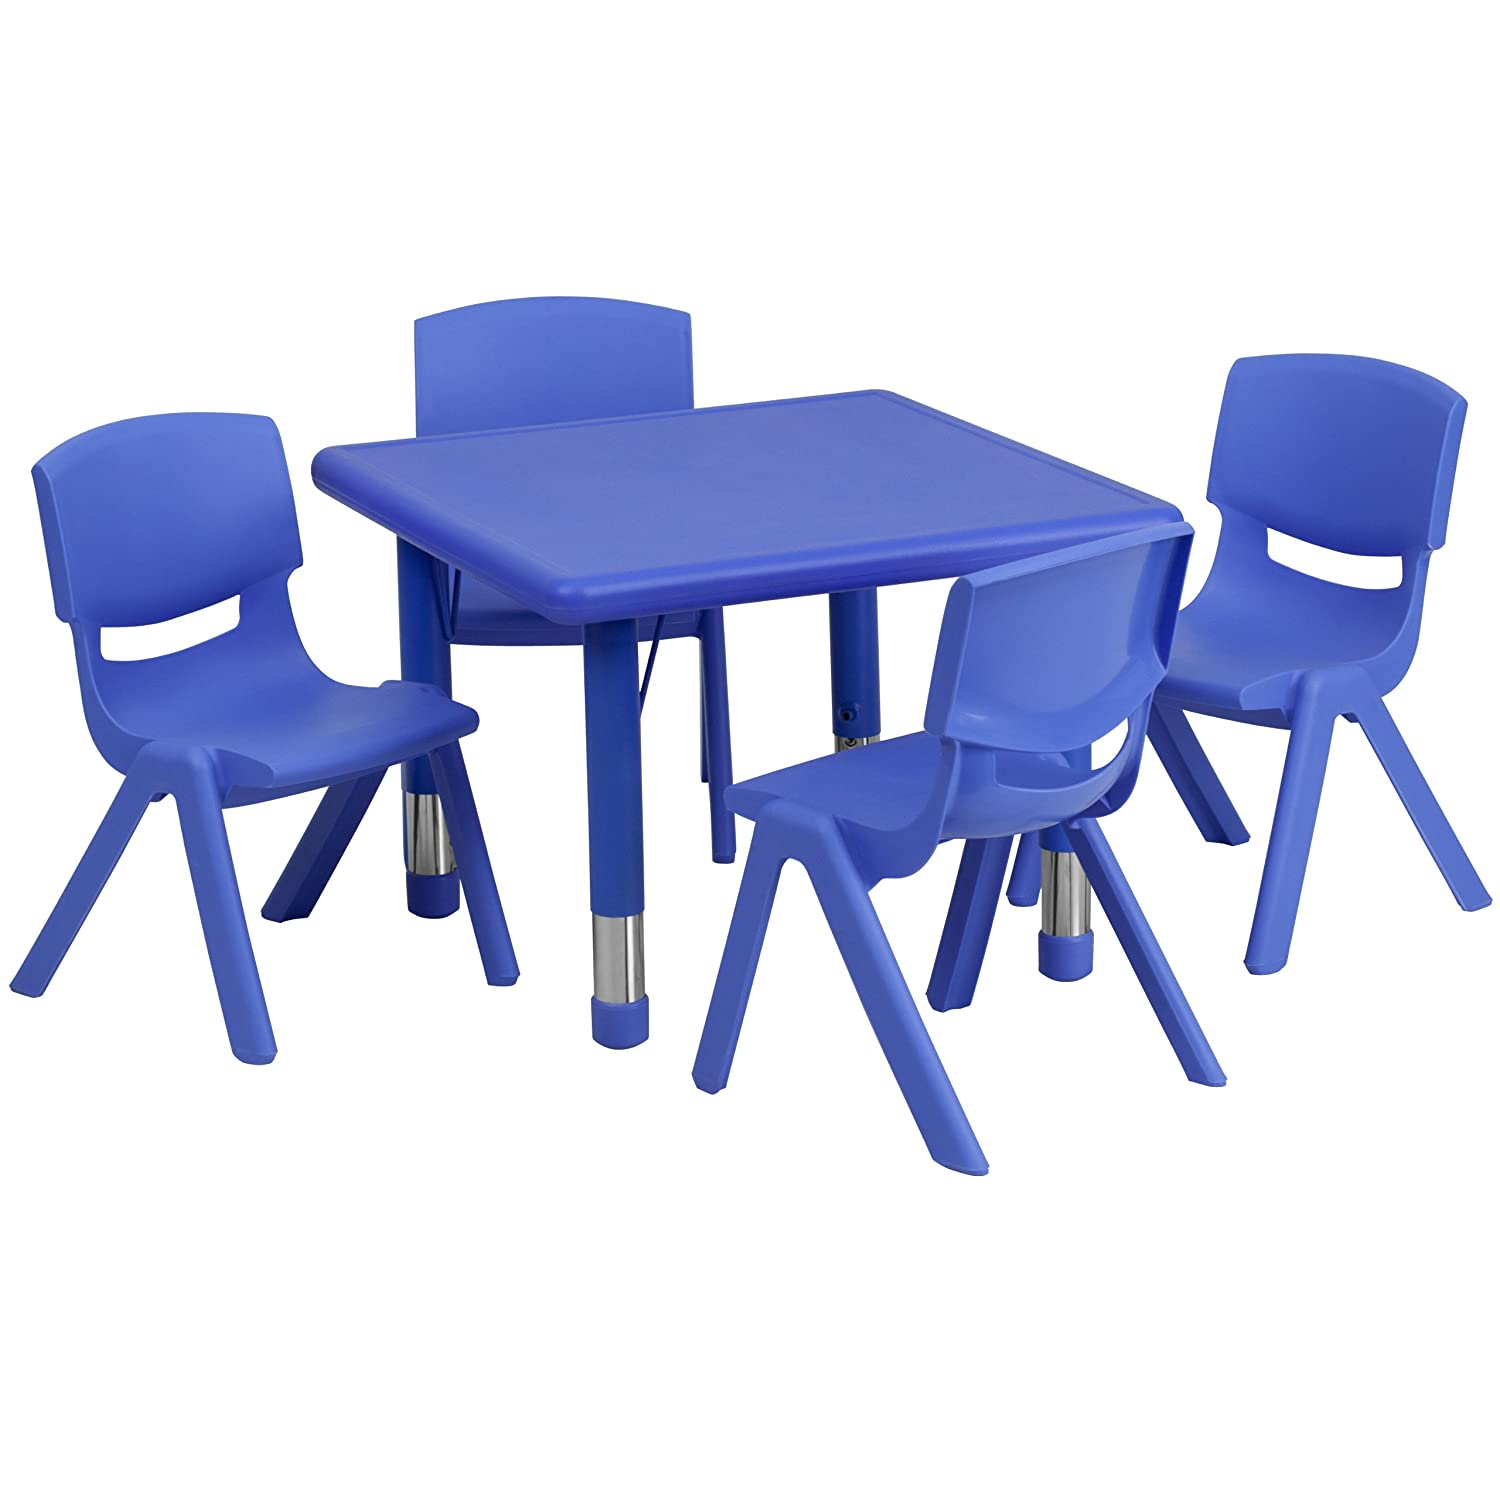 Amazon.com: Flash Furniture 24u0027u0027 Square Blue Plastic Height Adjustable Activity  Table Set With 4 Chairs: Kitchen U0026 Dining